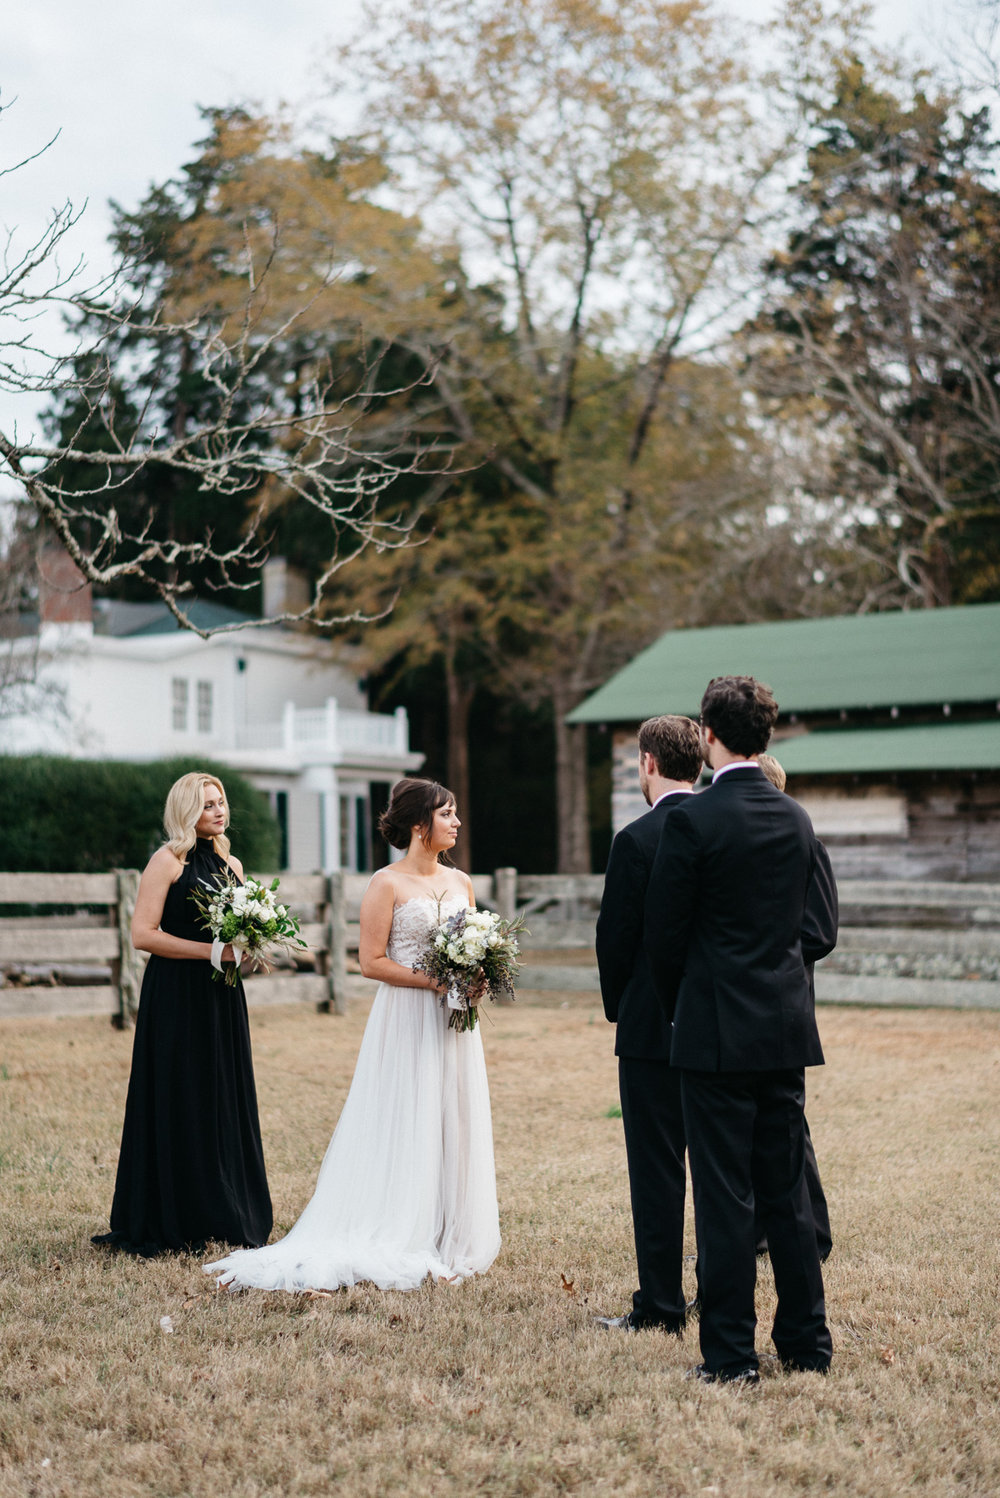 Elopement wedding photography on the grounds at Rowan Oak, Faulkner's home